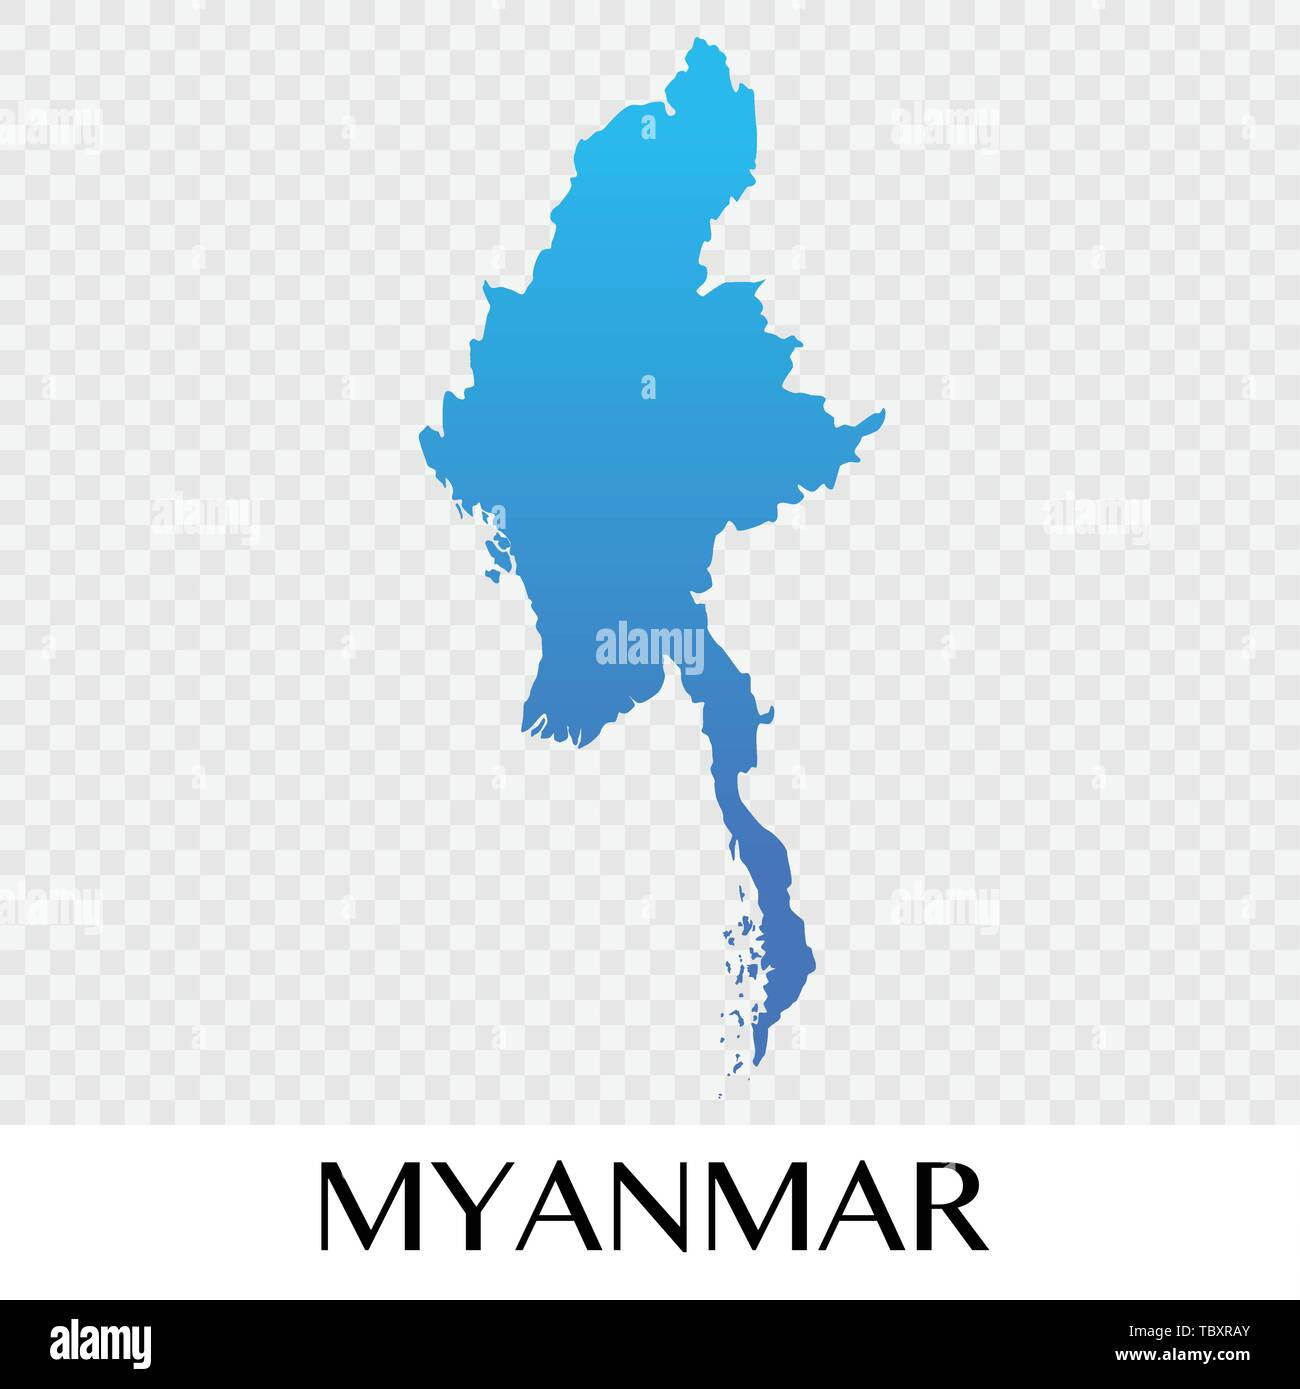 Myanmar map in Asia continent illustration design - Stock Vector